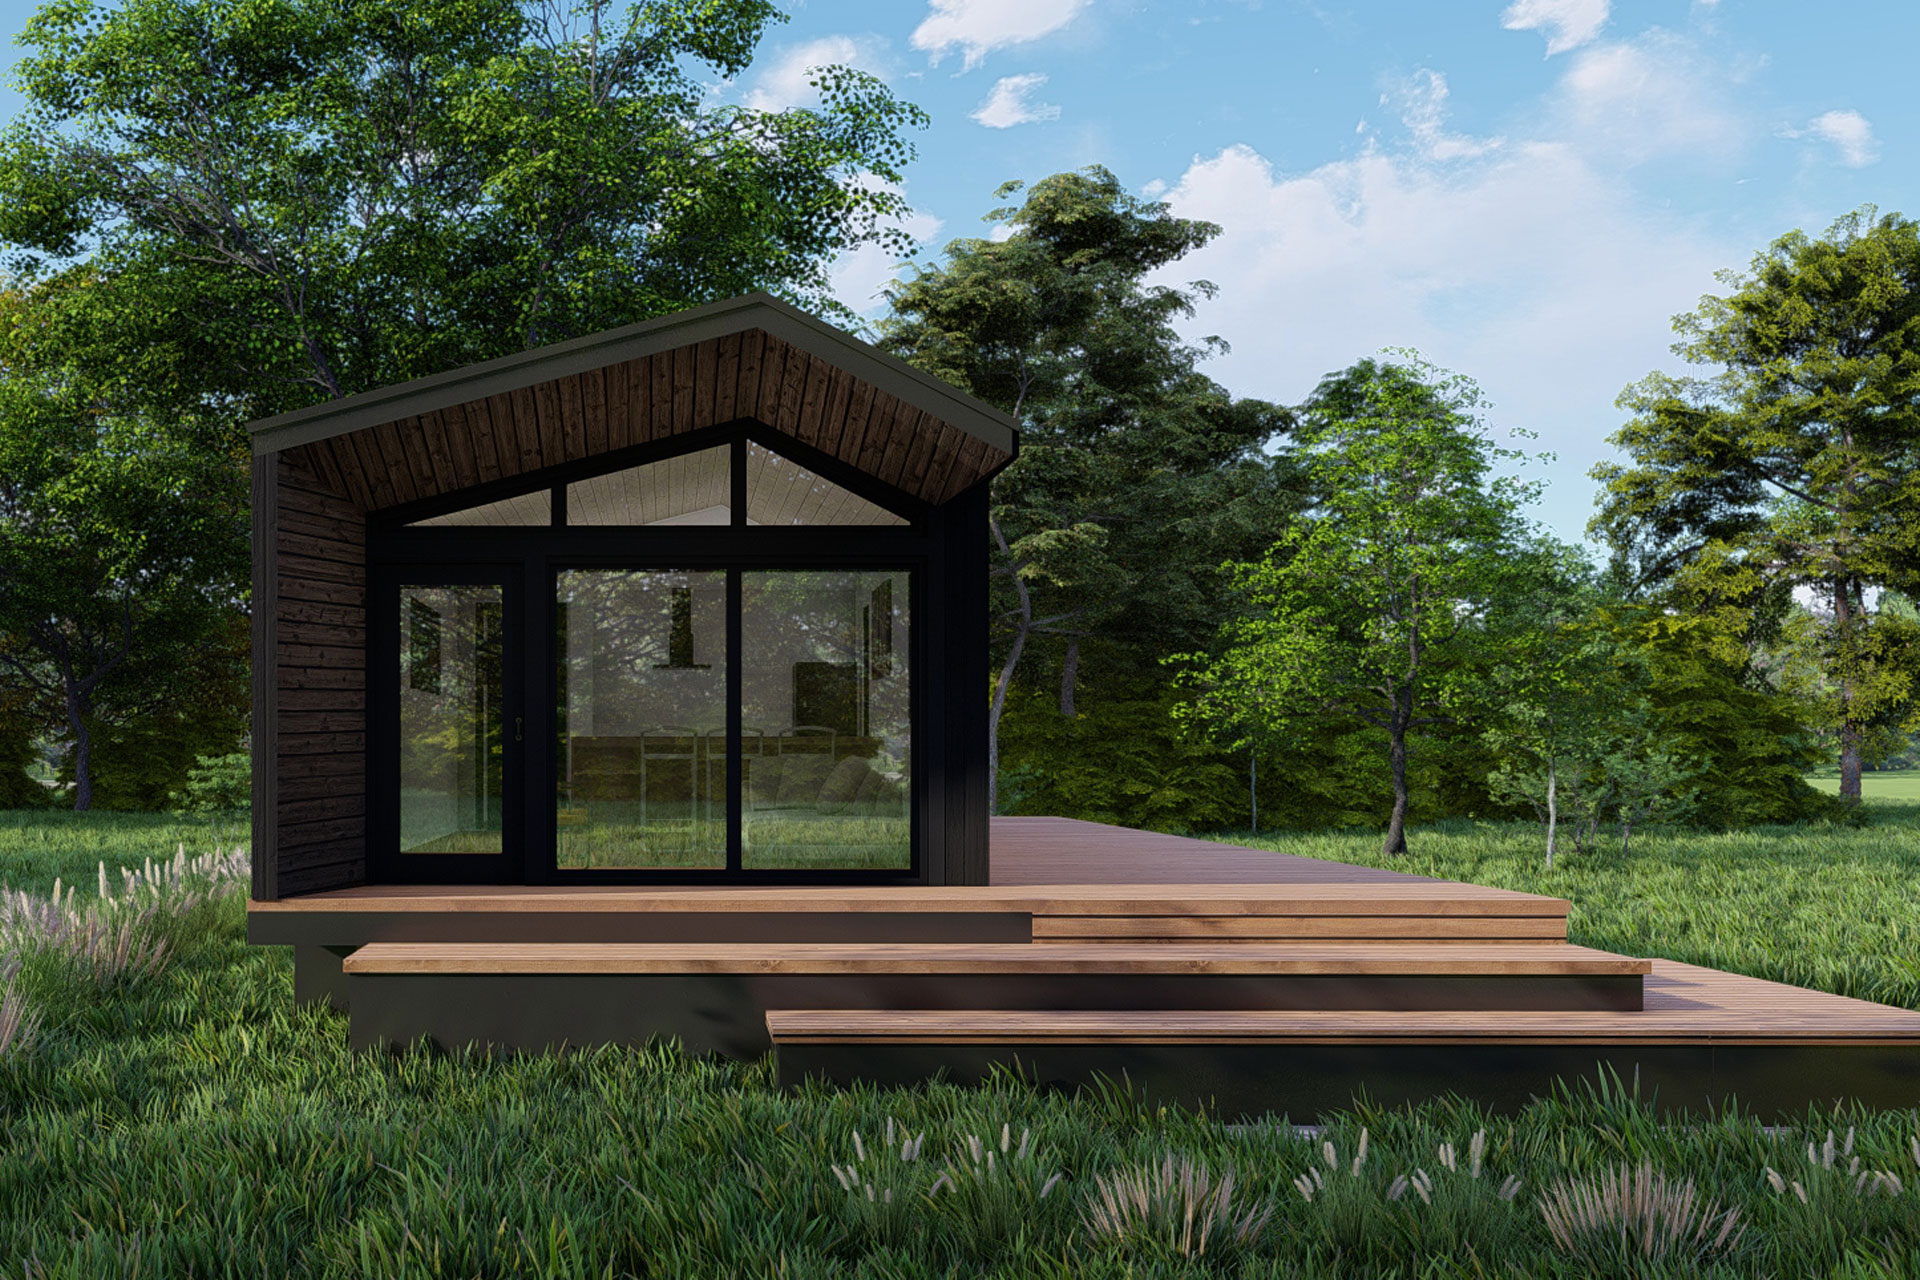 EcoTiny Modern Luxury Modular New Home Construction Tiny House